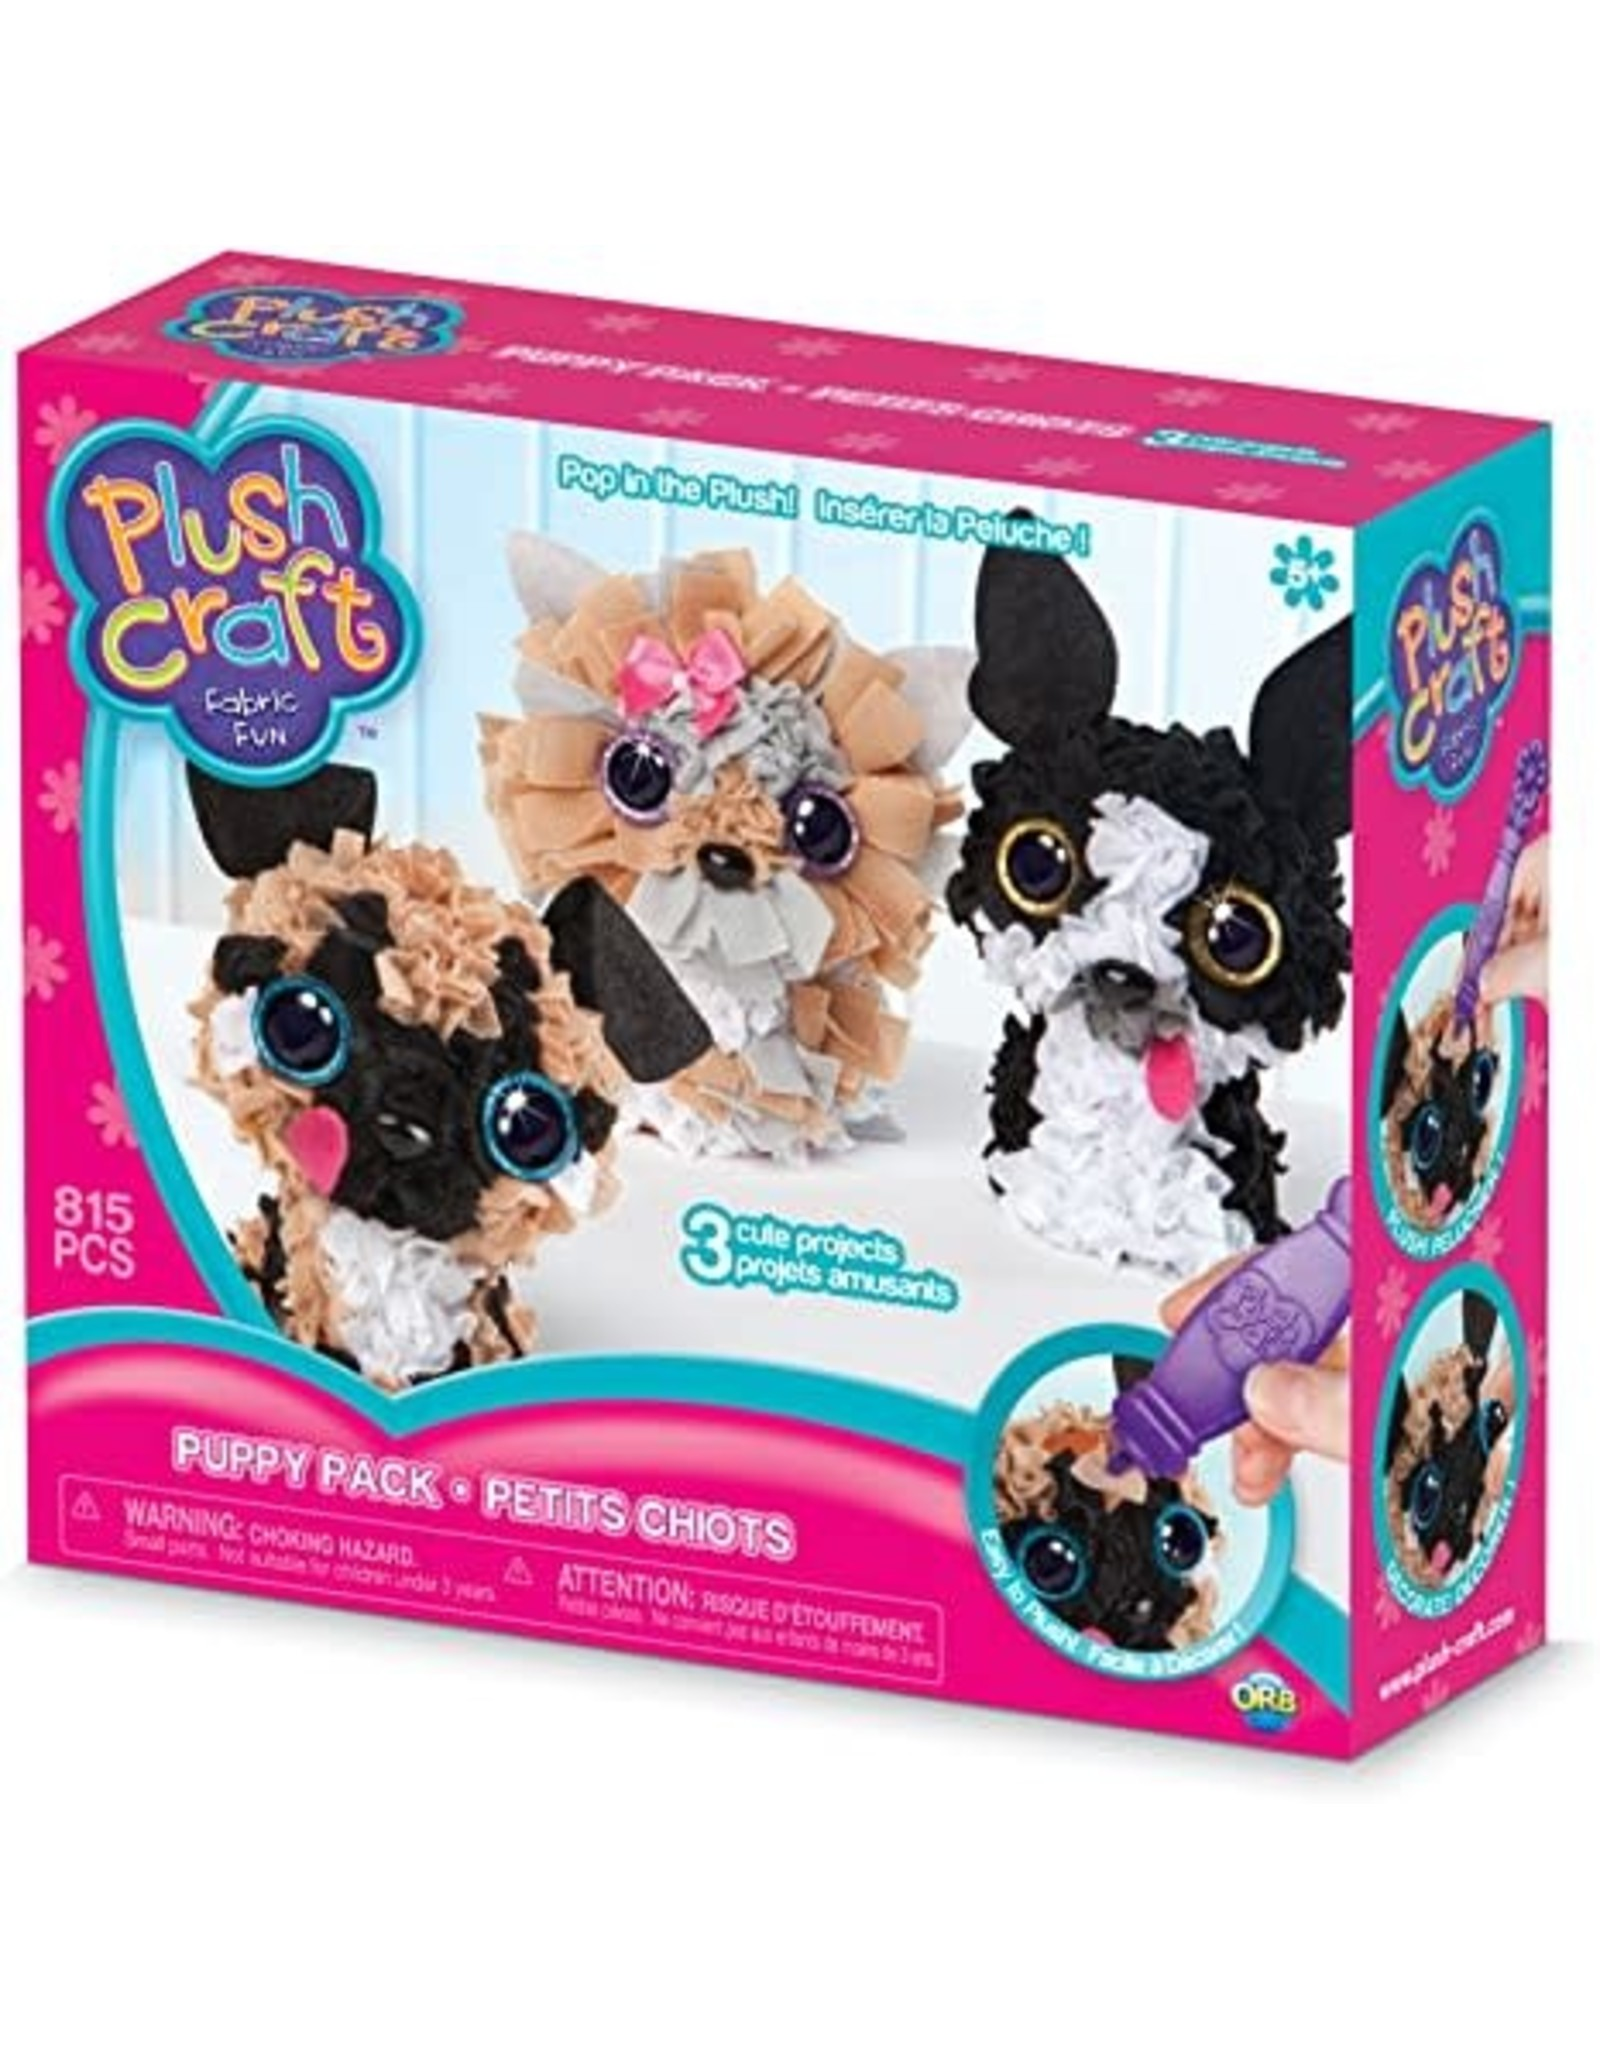 Orb Factory Plushcraft, Puppy Pack